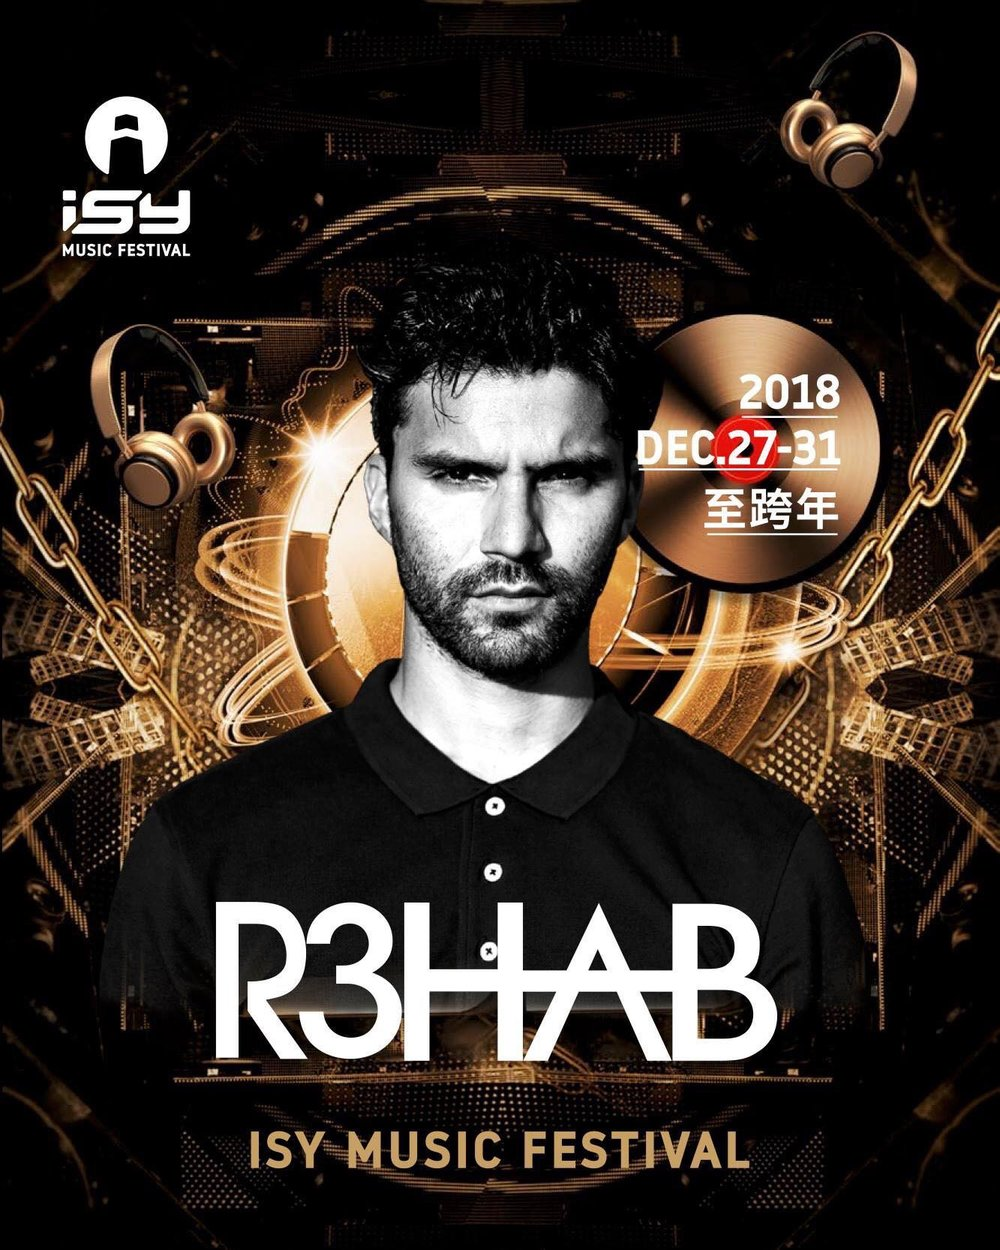 R3hab - Dutch DJ and record producer of Moroccan origin. Although his style and sound at the time were usually darker, somewhat reminiscent of early psytrance or gabber compositions.